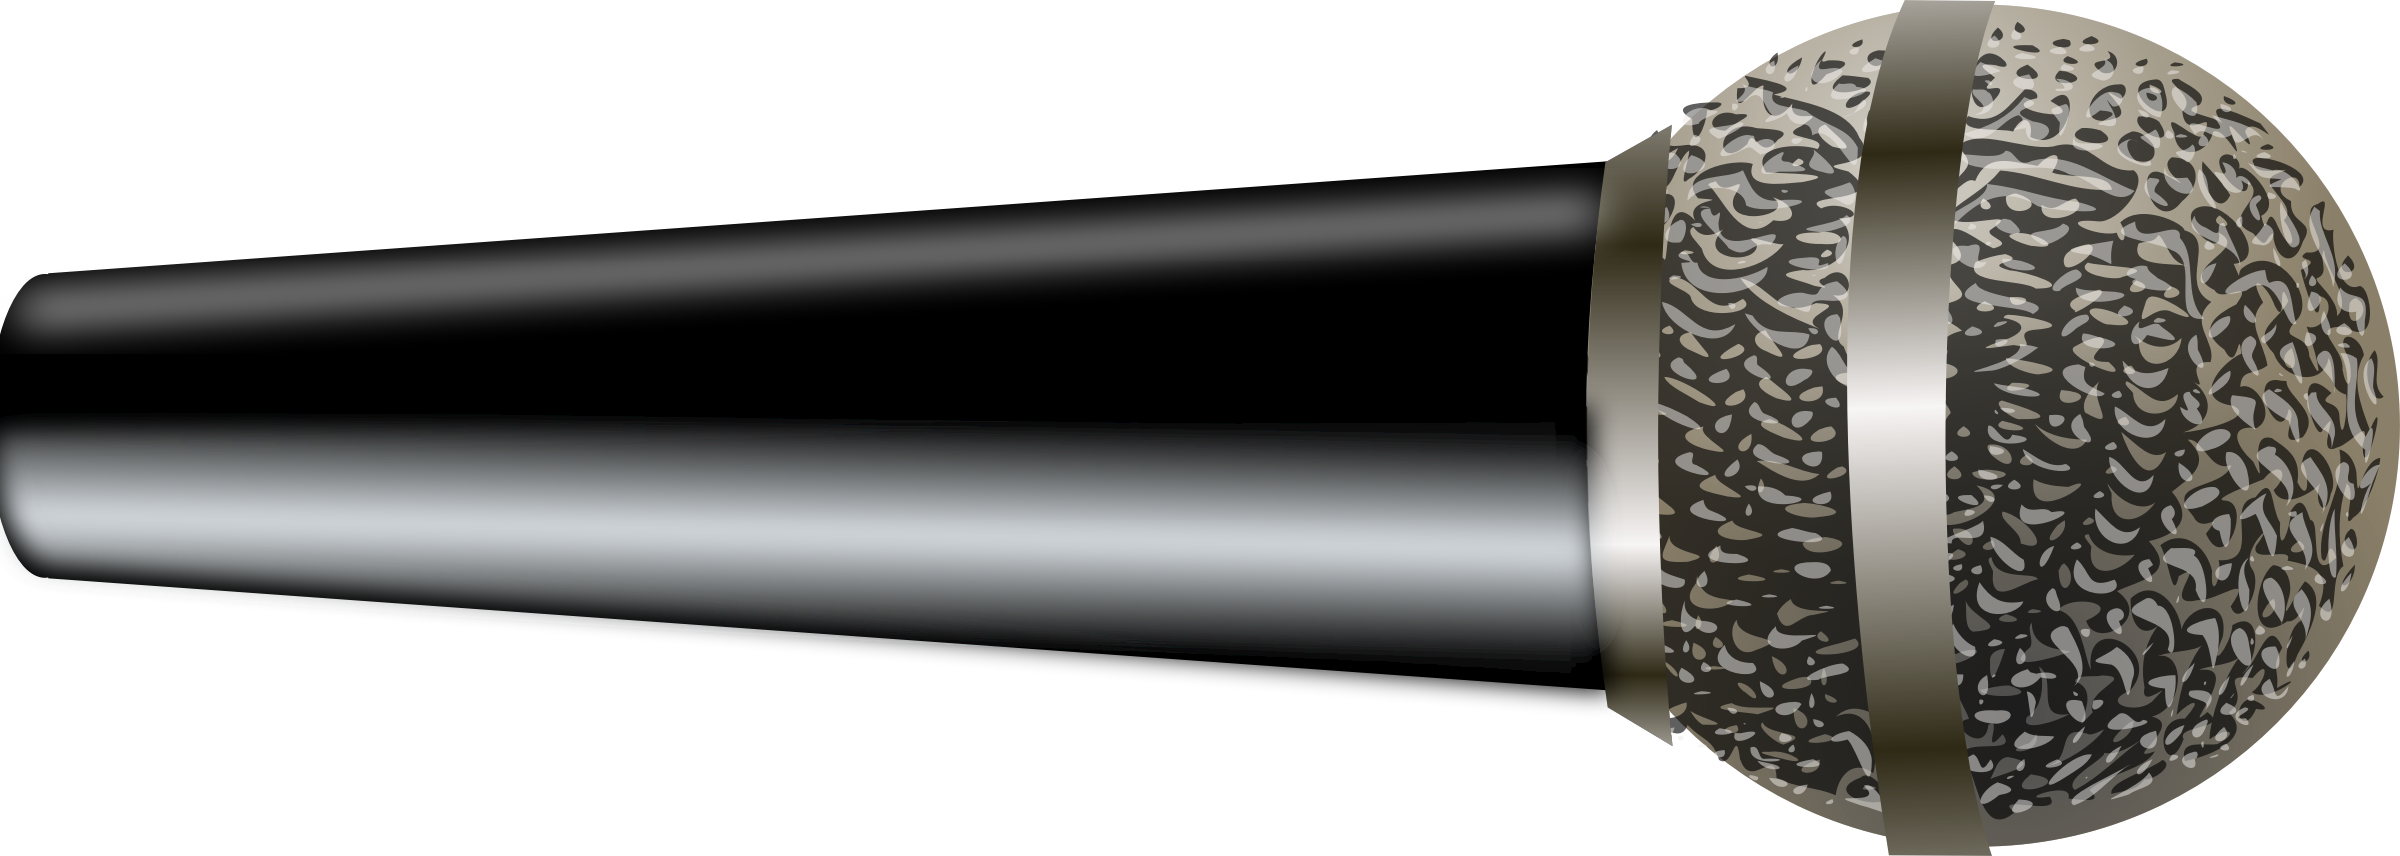 microphone transparent Image png 2